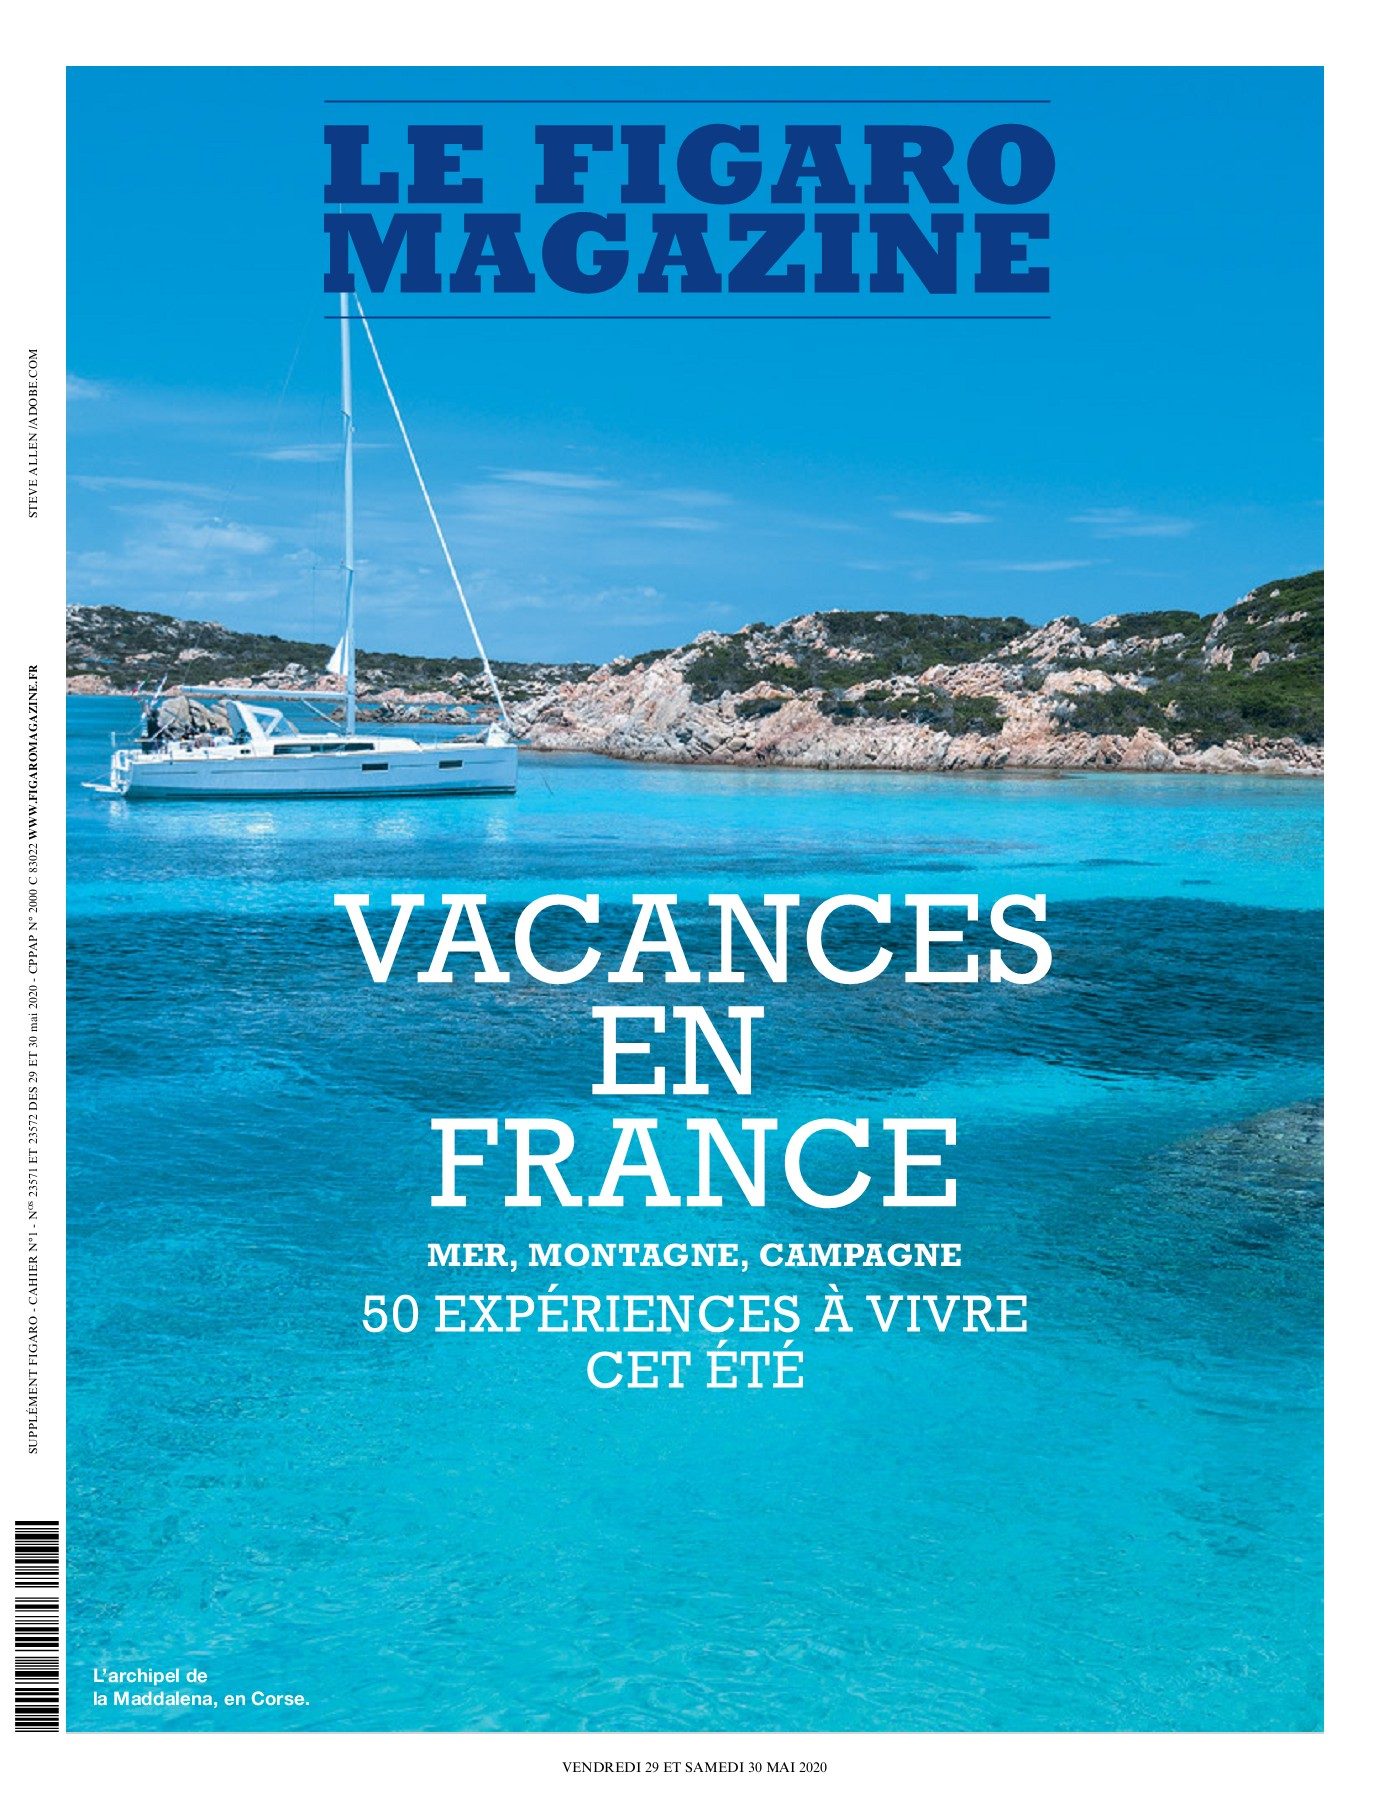 Vacances En France Le Figaro Magazine Pages 1 31 Flip Pdf Download Fliphtml5